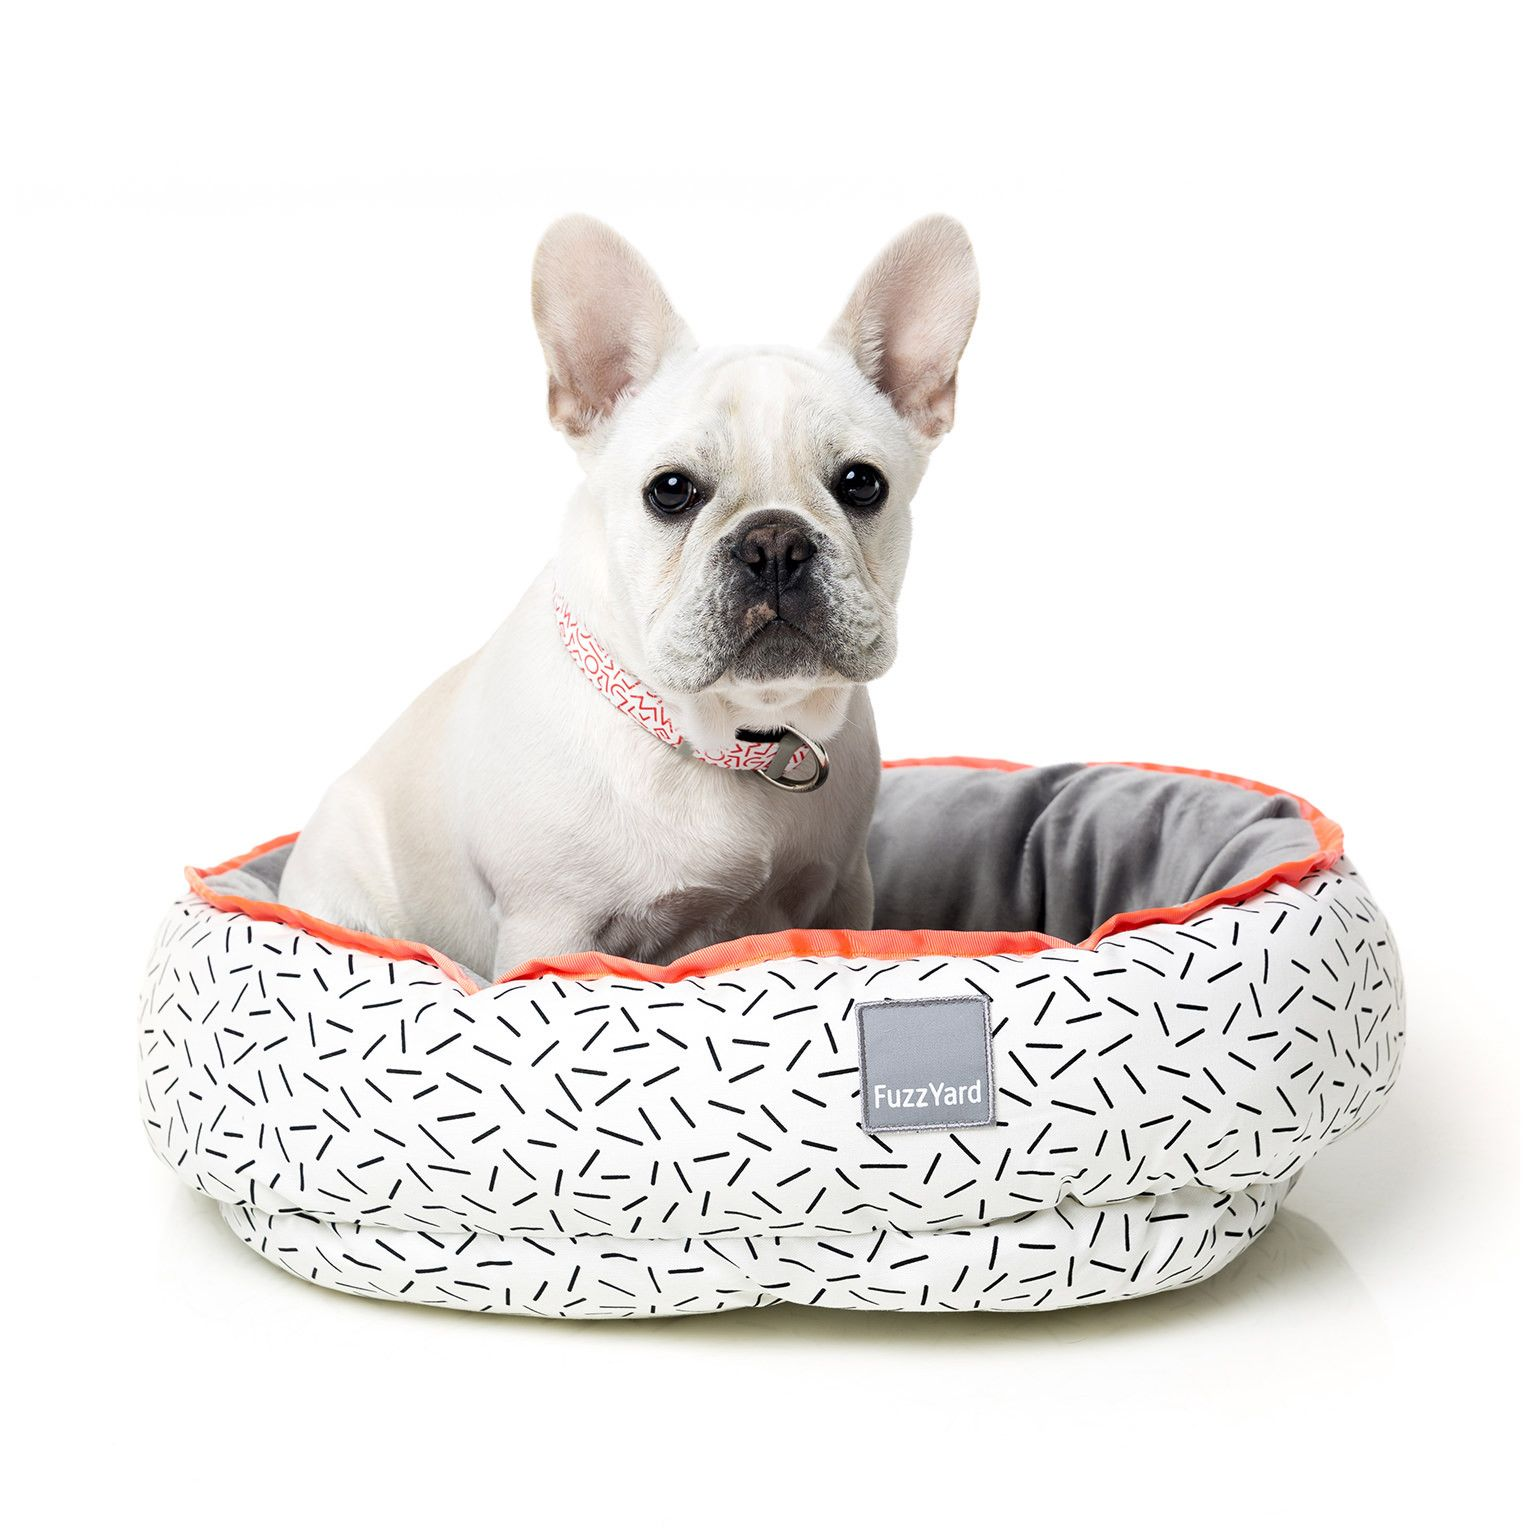 French Bulldog In The Fuzzyard Hustle Reversible Pet Bed French